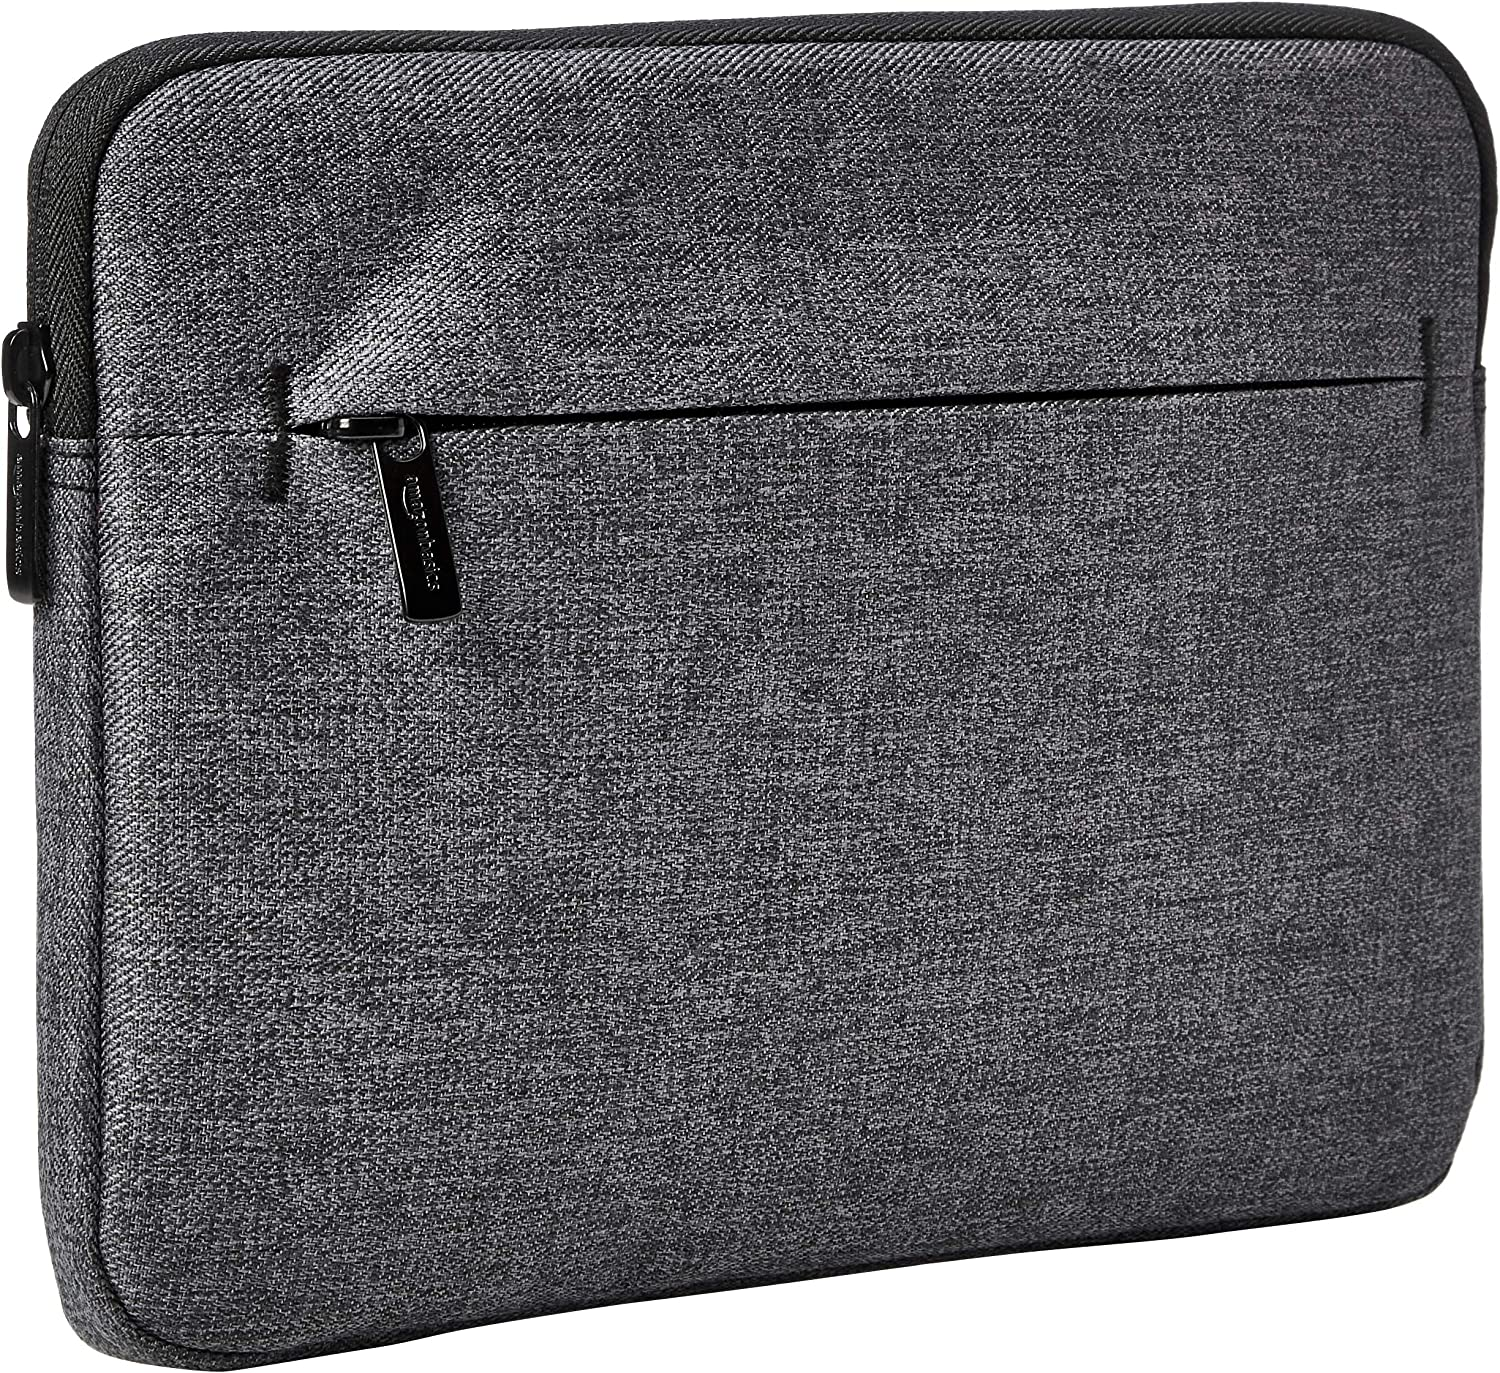 AmazonBasics iPad Tablet Sleeve Case with Front Pocket, 10 Inch, Grey